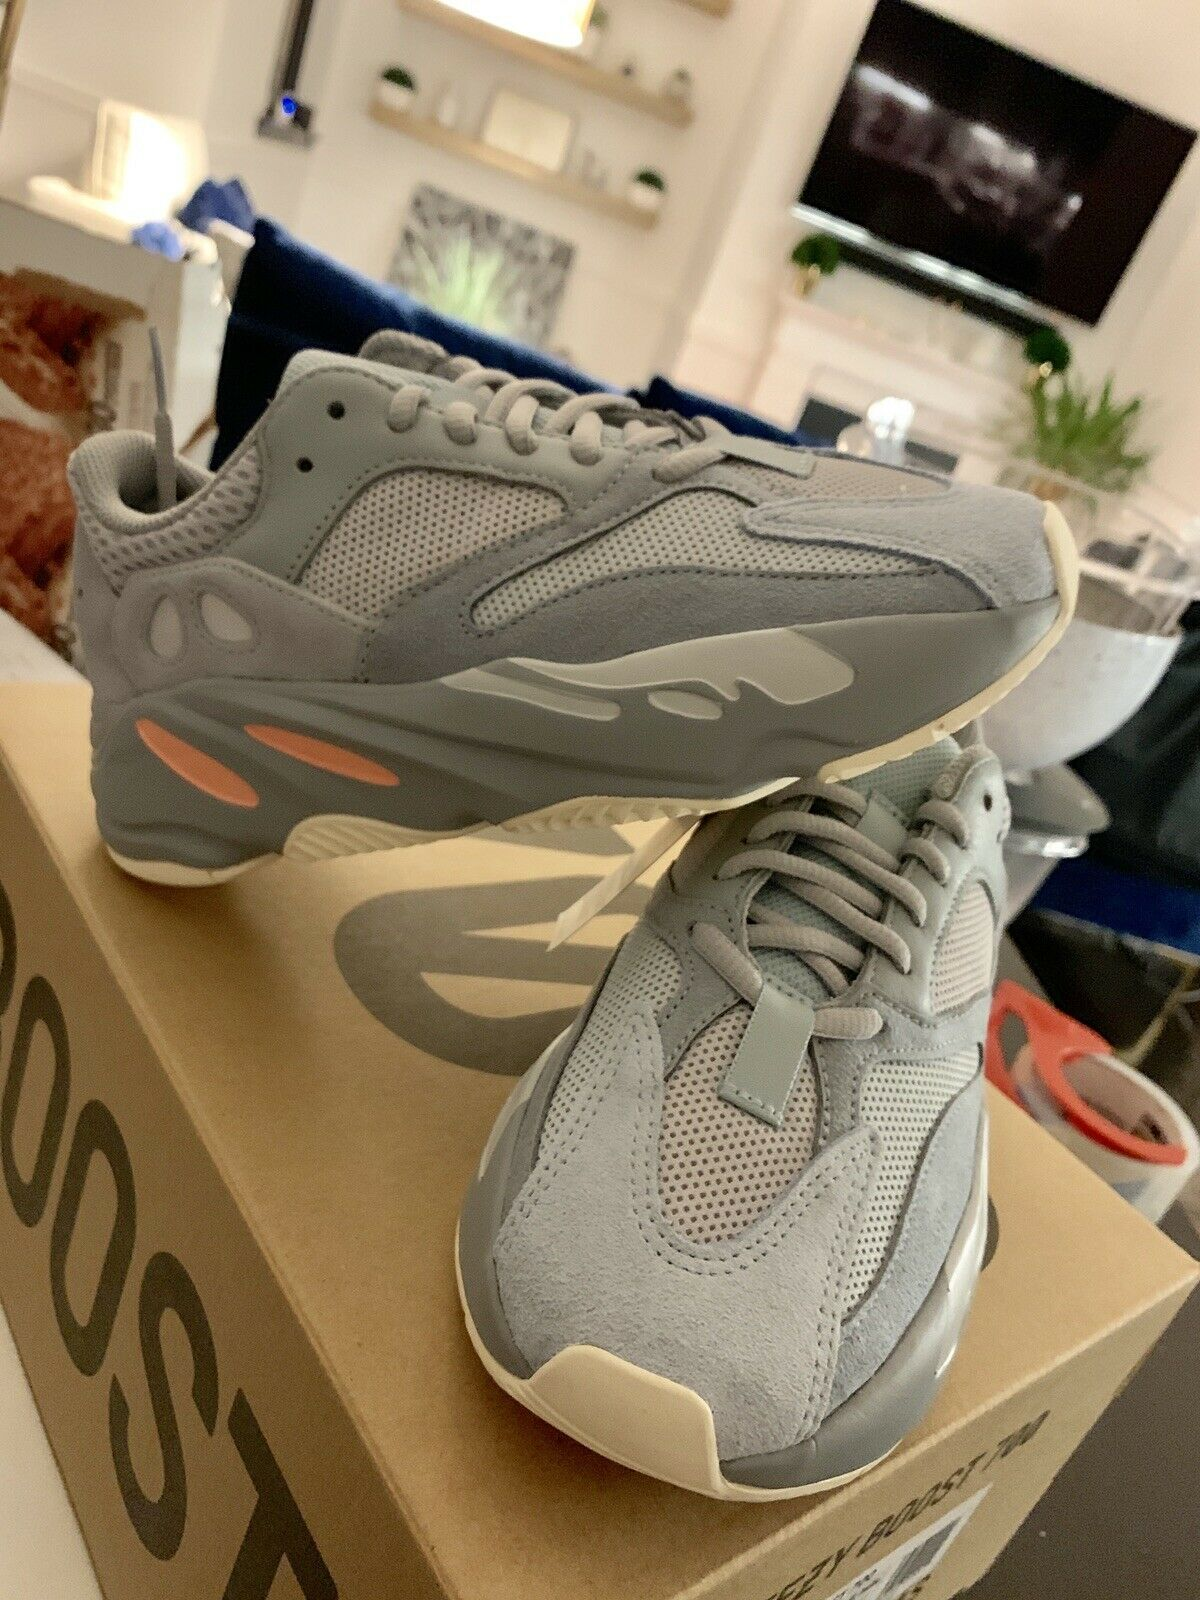 Adidas Yeezy Boost 700  Inertia  Size 4.5 (In Hand) New In Box